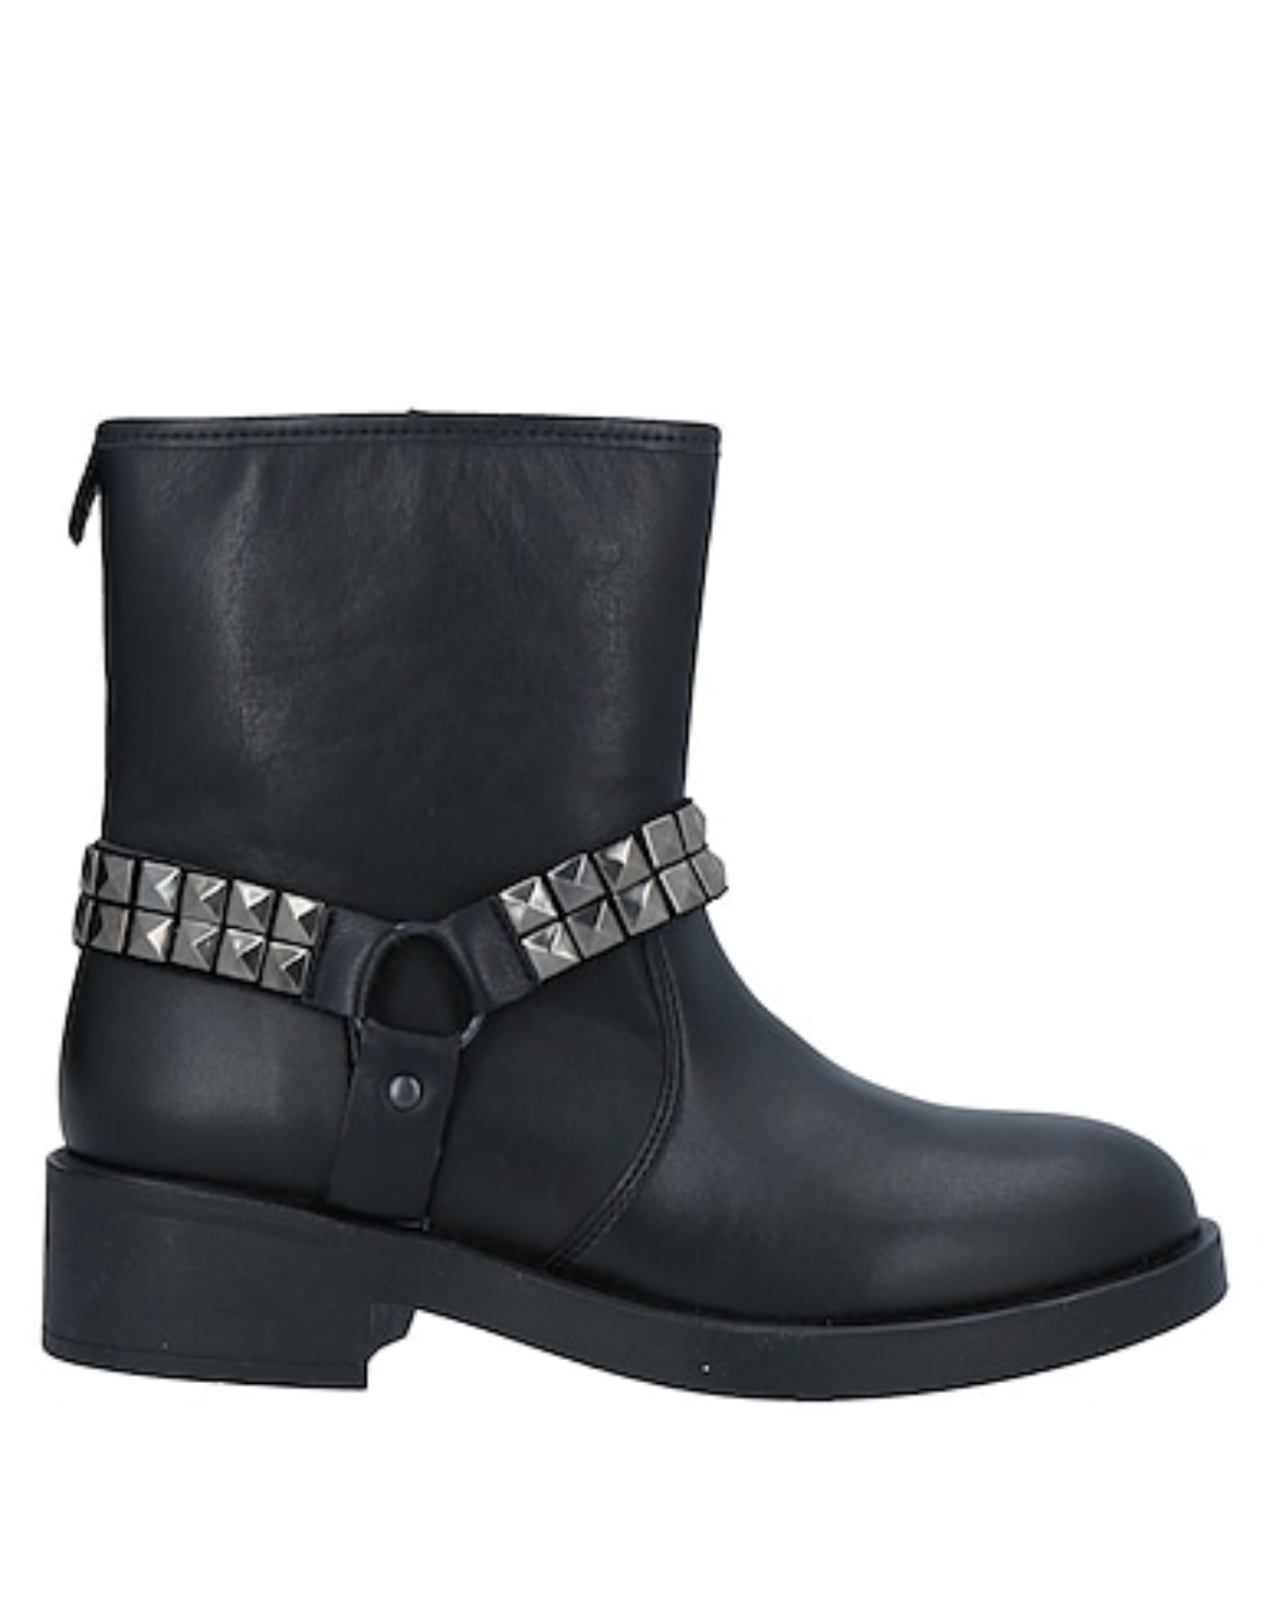 Guess Leather Ankle Women's Boots, Black Patent - UK 7